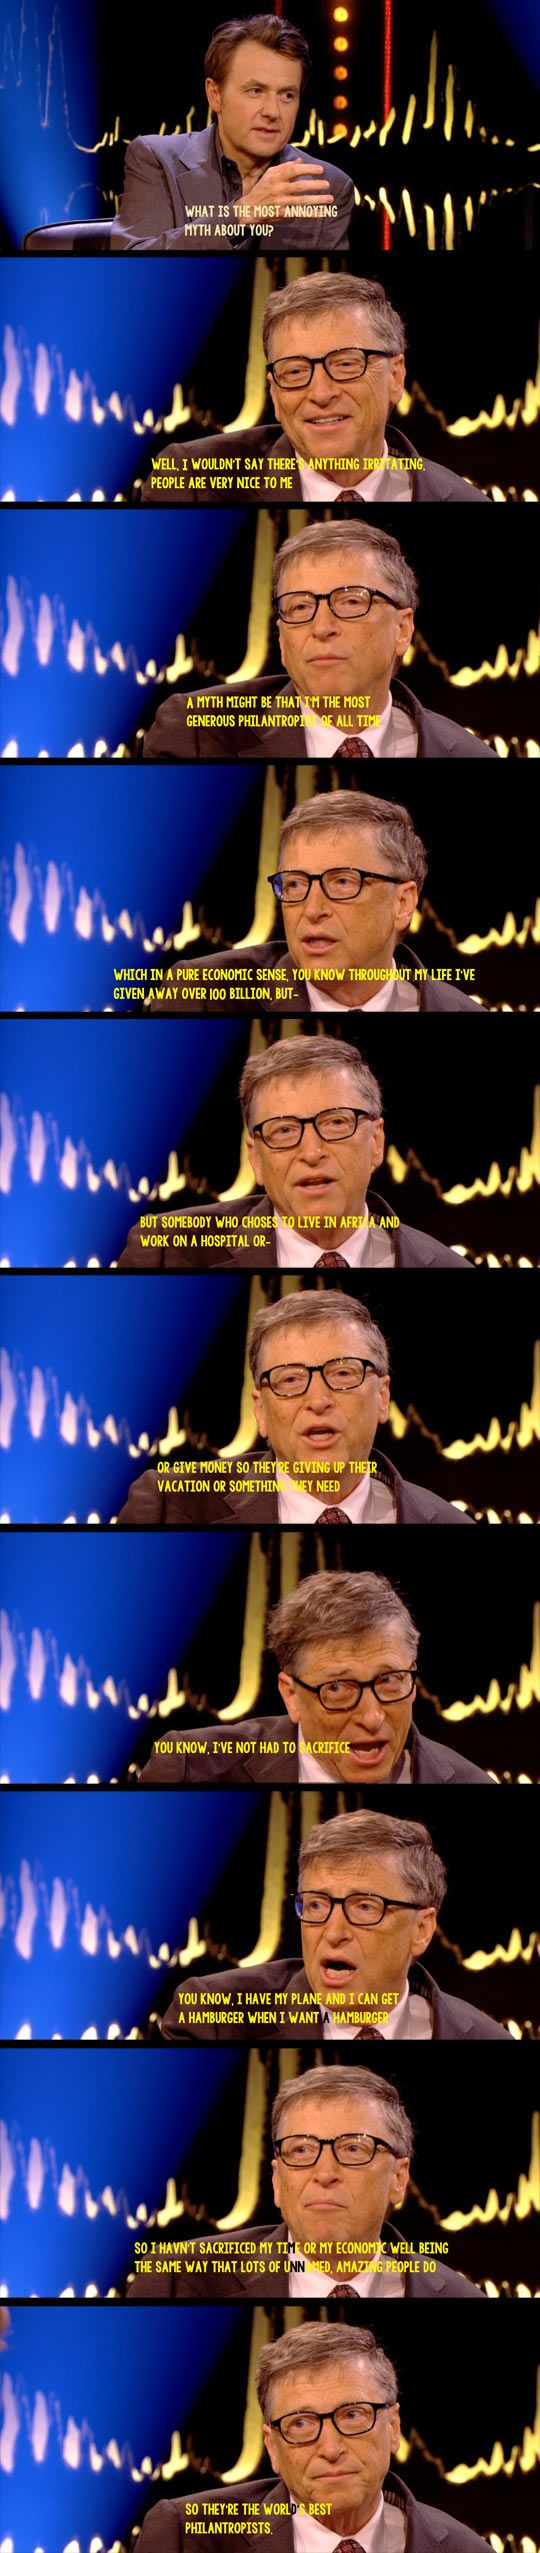 Bill Gates Most Annoying Myth - Gotta give him credit for this response.  After certain levels of wealth, it becomes way more easy to give generously, and frankly obscene not to. I hope he recognizes the reality that it's not just hard work and ingenuity that got him his wealth and success. There is a considerable amount of good fortune involved in that sort of financial gain.